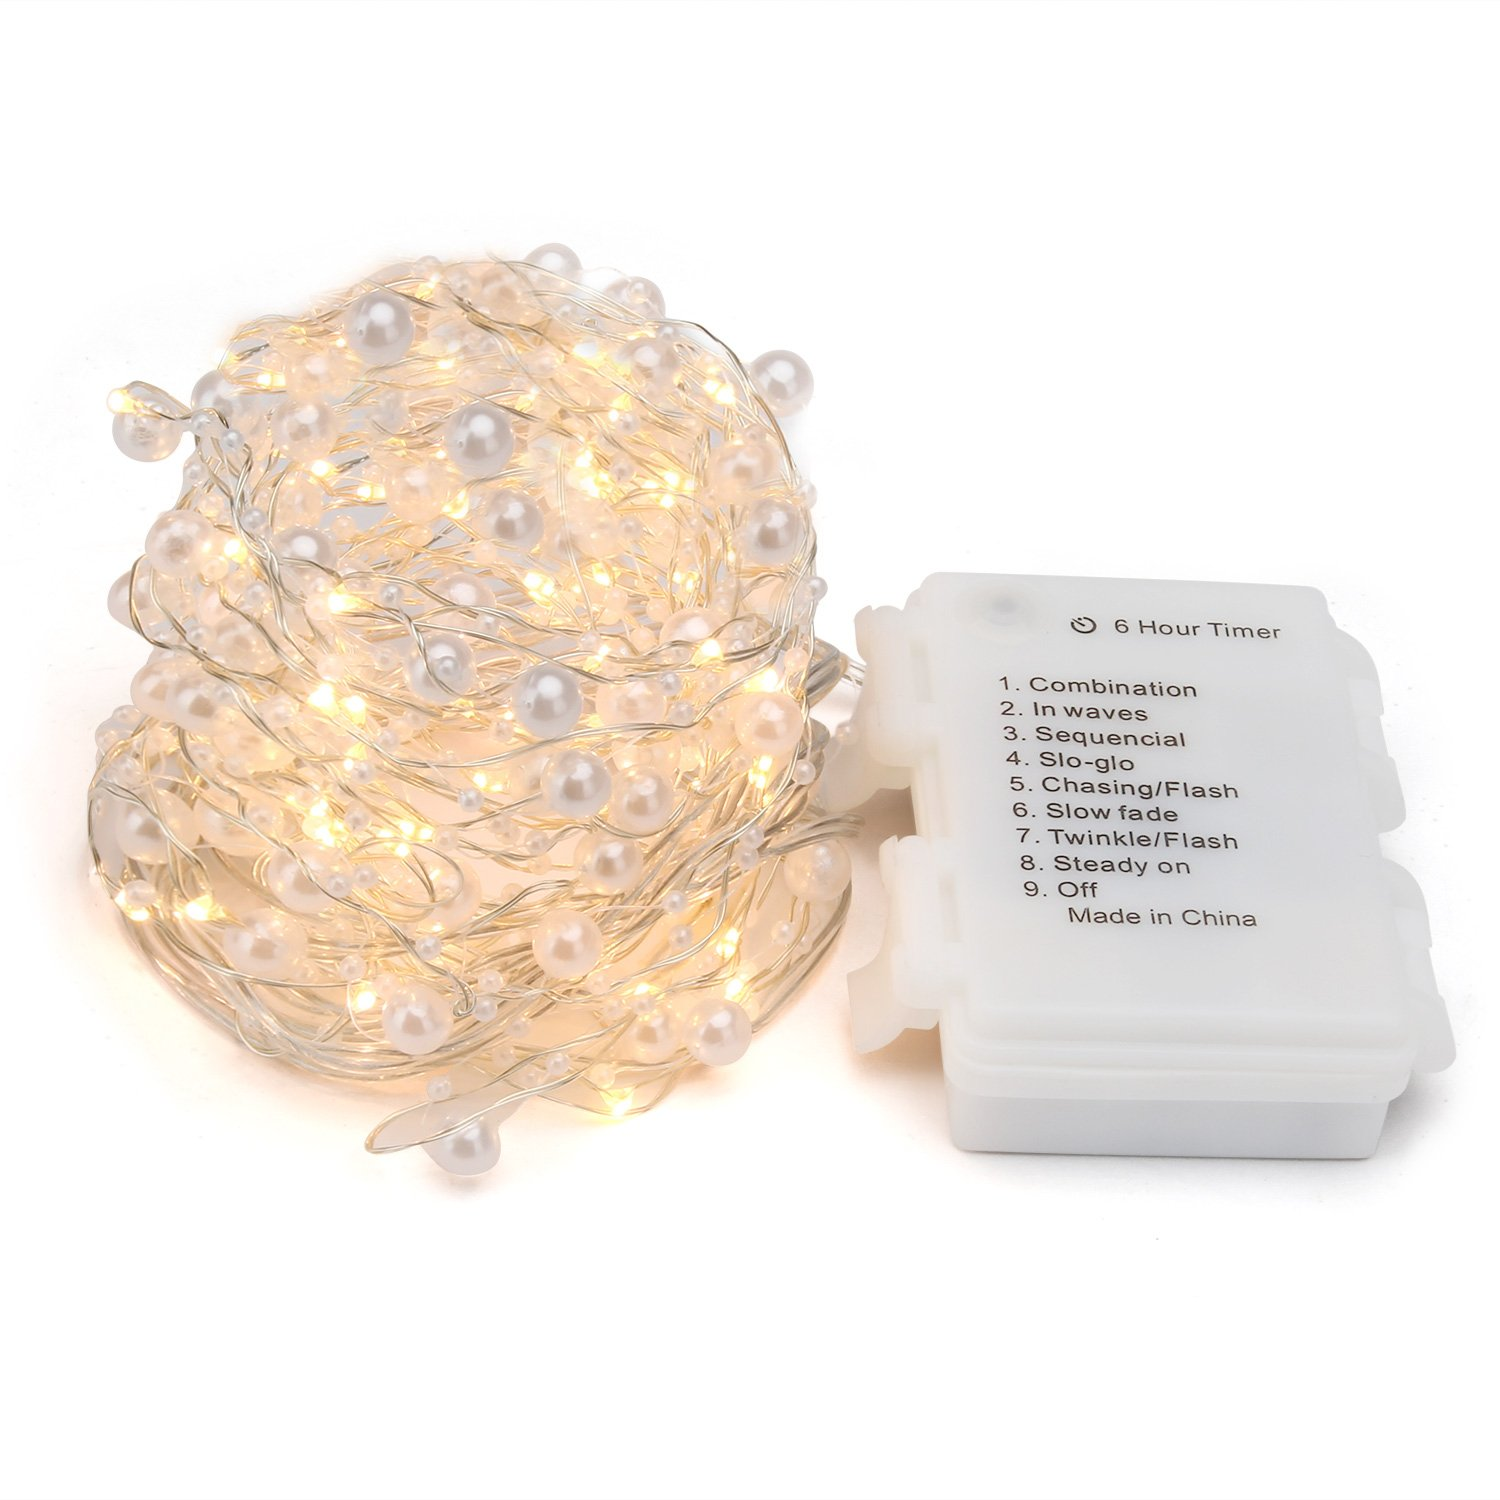 ENGIVE LED Fairy String Lights,19.7Ft/6M 60leds Pearl String Lights Christmas Garden Home Party Festival Decorations Crafting Battery Operated Lights(Warm White) by ENGIVE (Image #2)